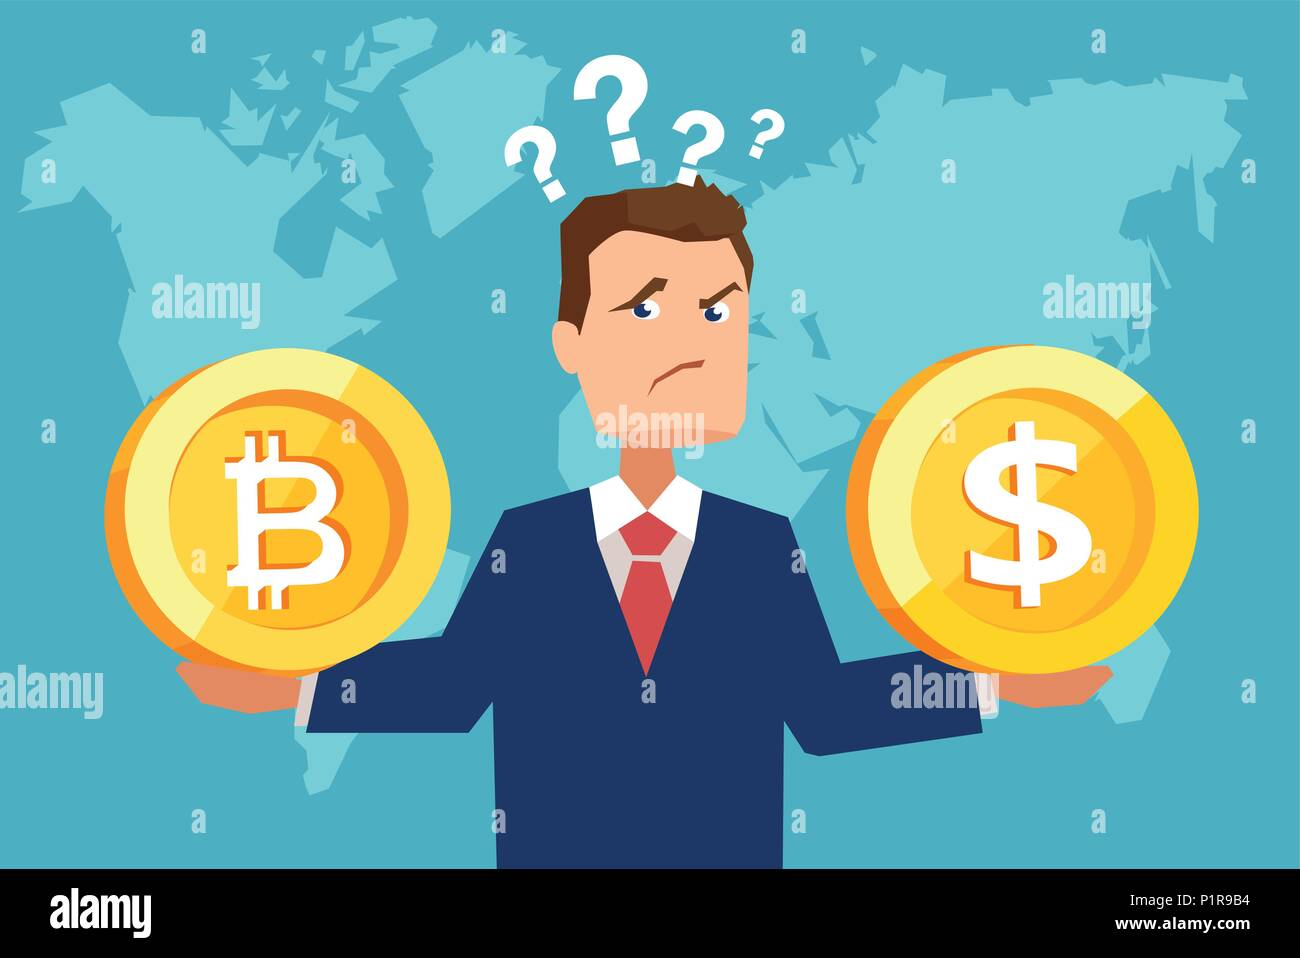 Flat style picture of businessman holding dollar coin and bitcoin looking confused with finances. - Stock Image